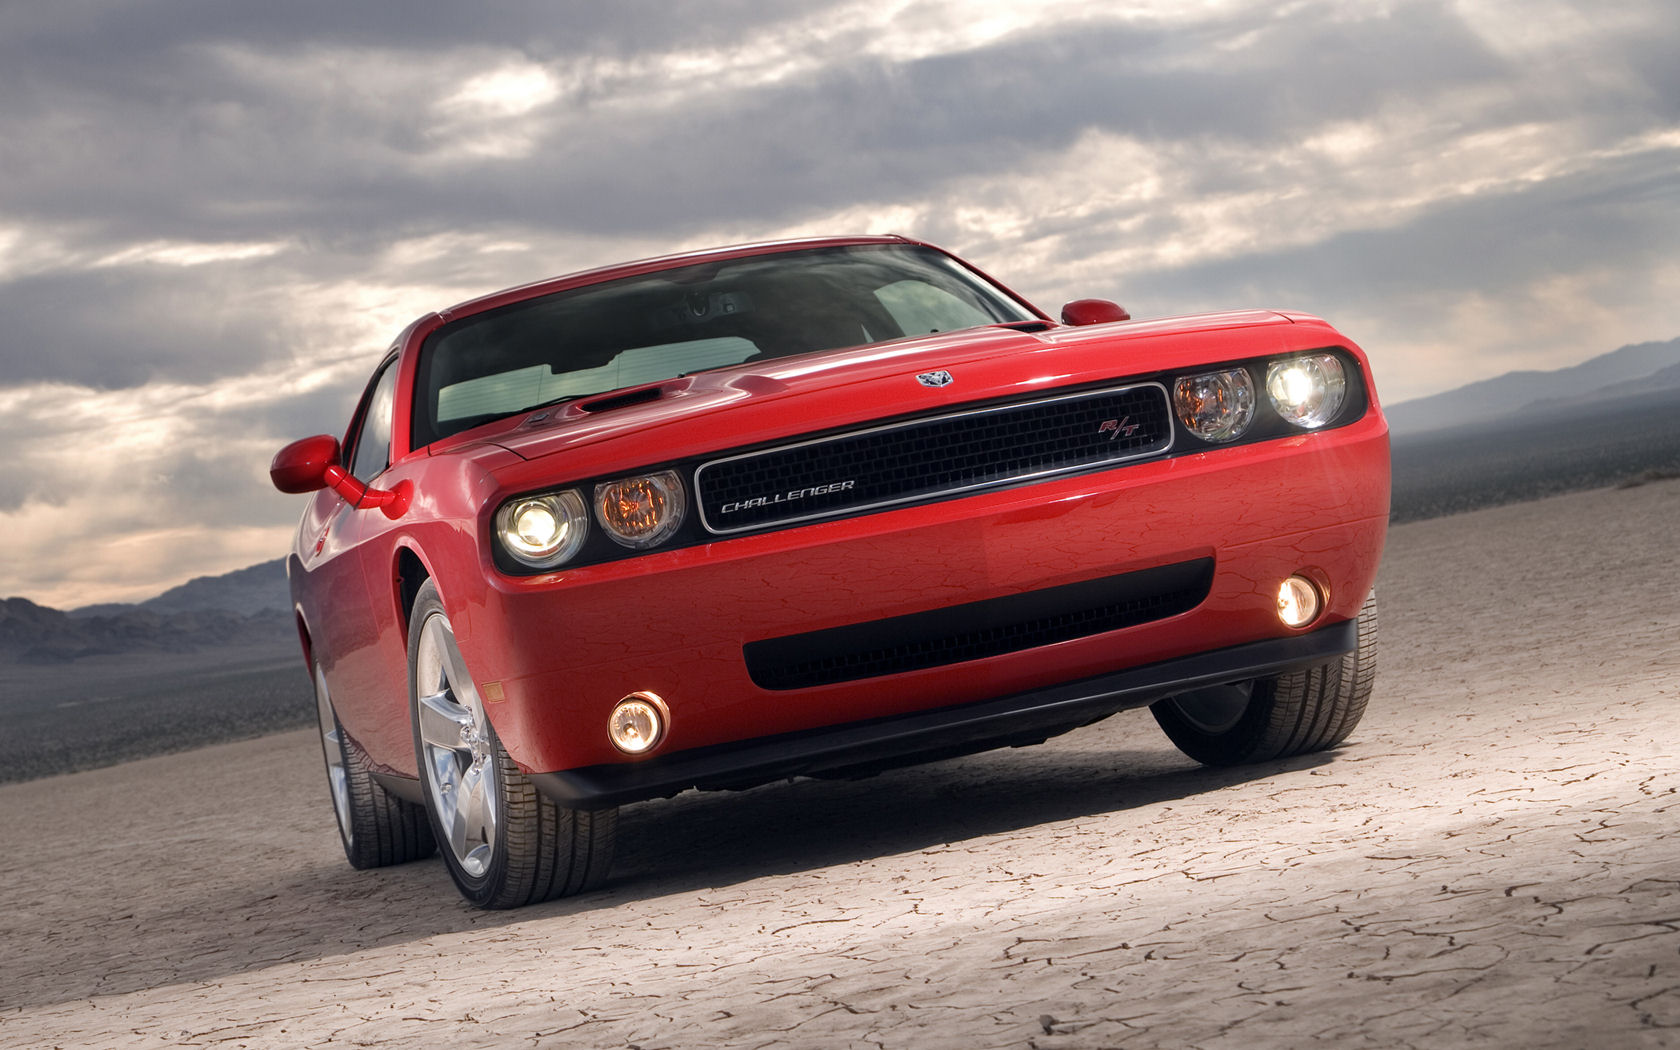 Dodge Challenger Dodge Challenger Desktop Wallpapers Widescreen 1680x1050